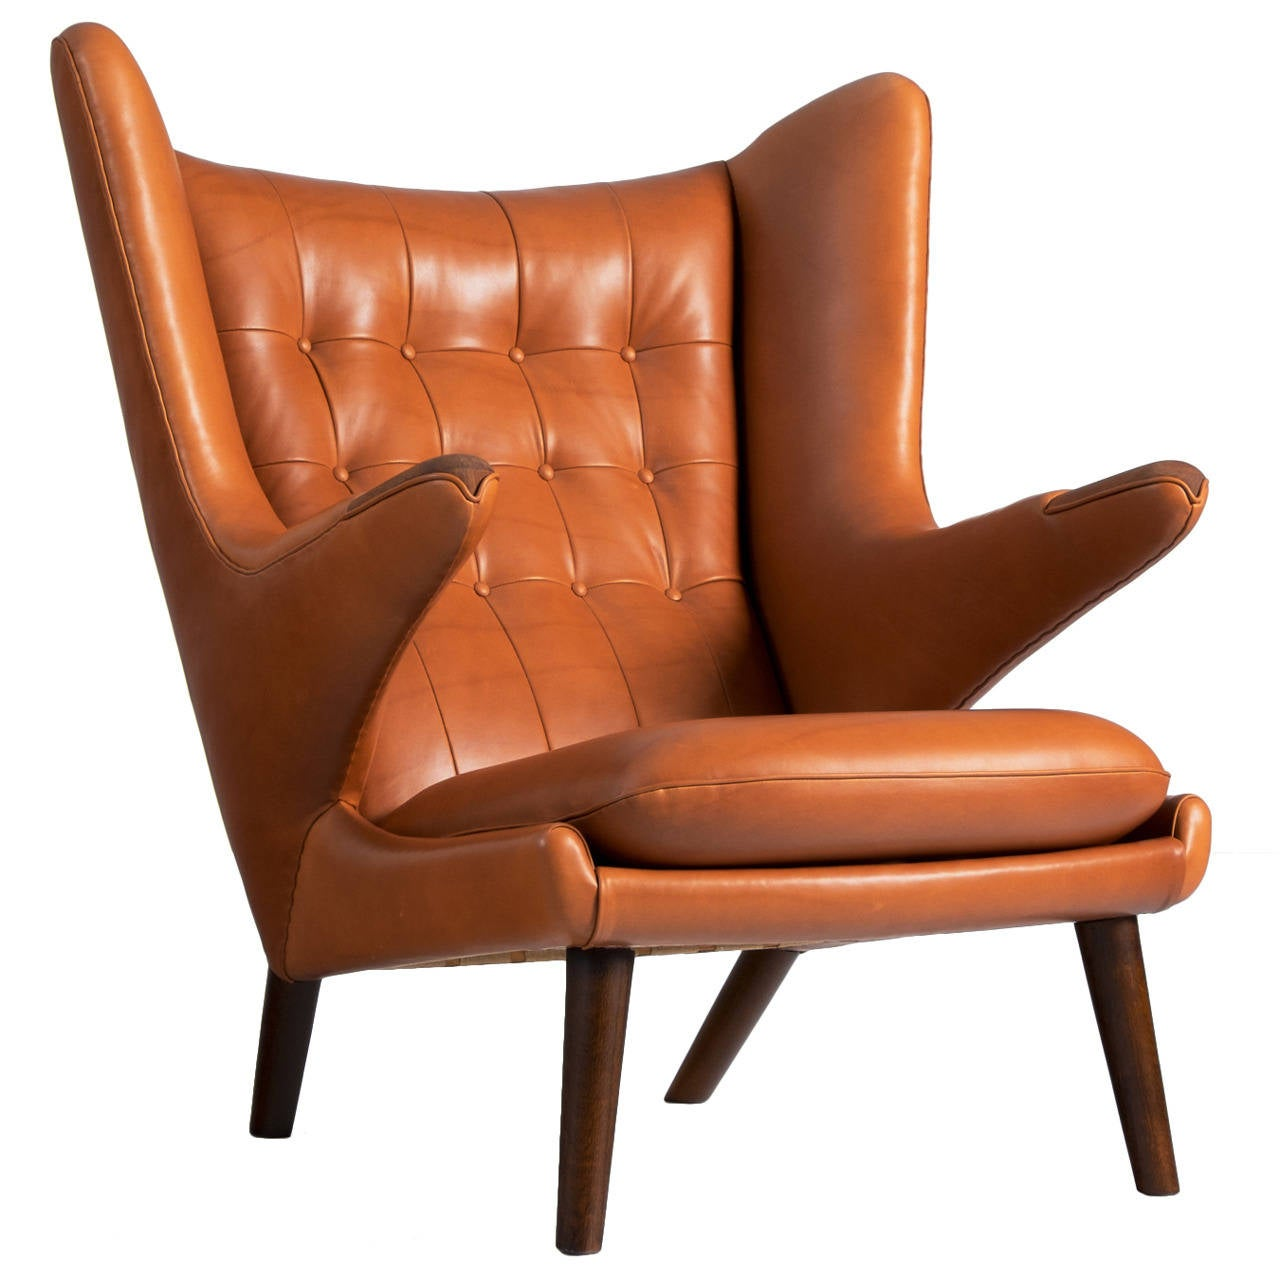 papa bear lounge chair by hans j wegner in cognac leather for sale at 1stdibs. Black Bedroom Furniture Sets. Home Design Ideas